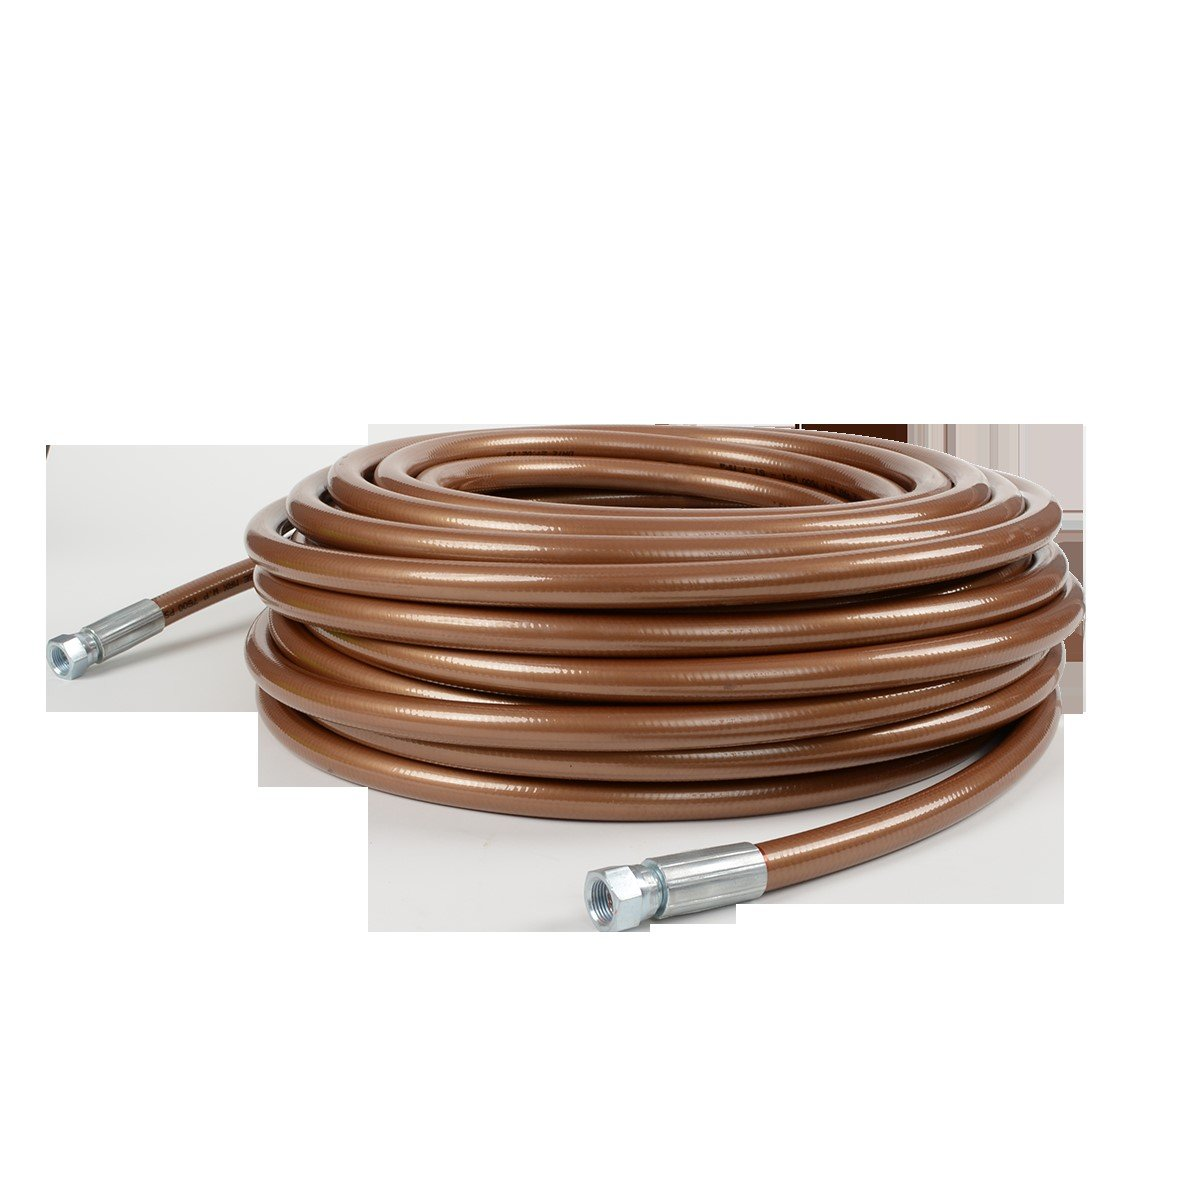 Titan High Pressure 1/4'' x 50' Bronze Airless Paint Spray Hose 7500psi - OEM by Titan